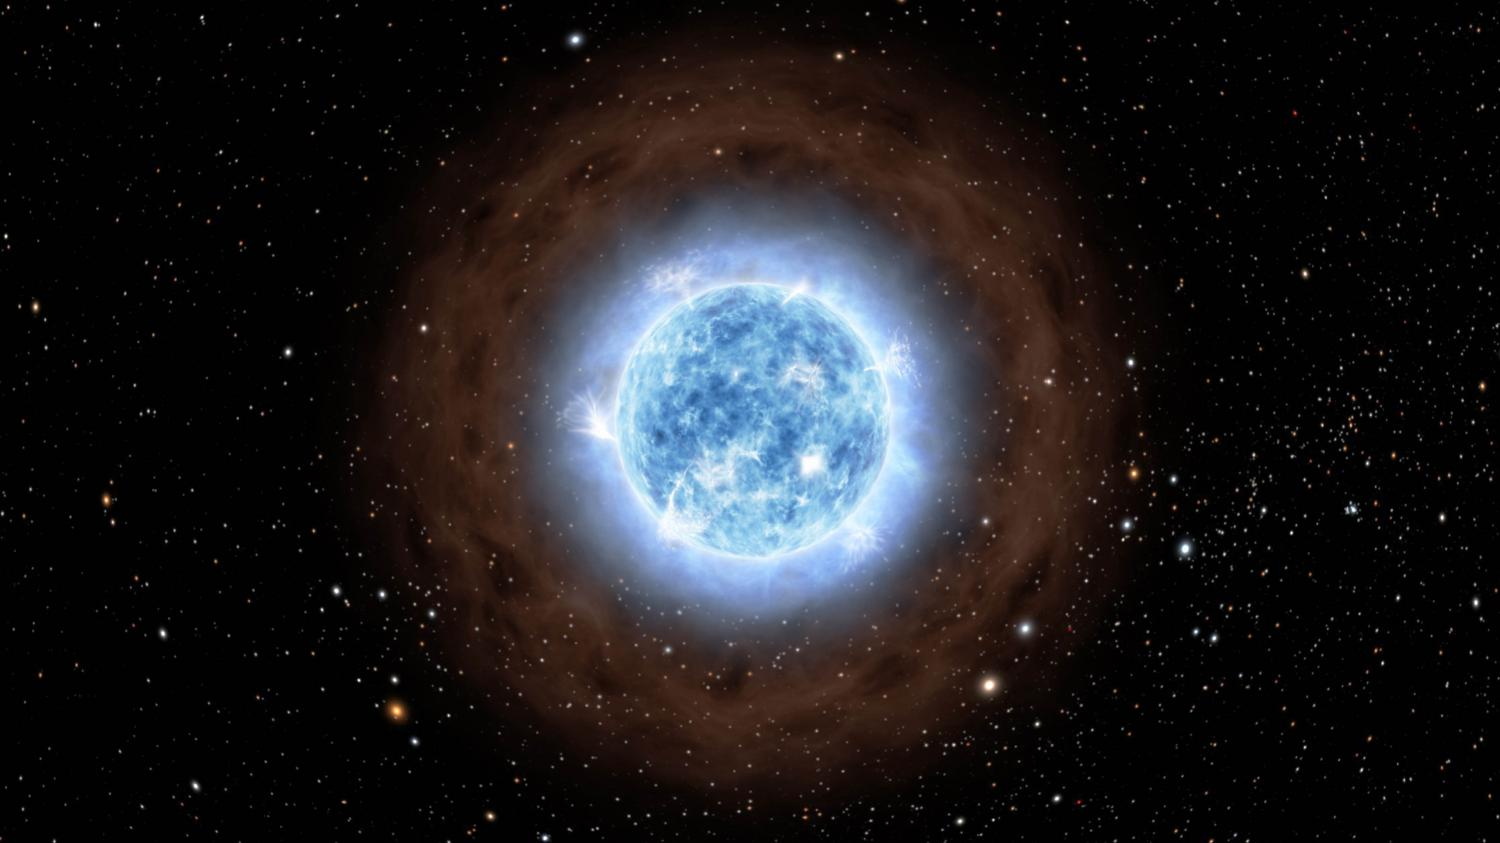 Faintest hisses from space reveal famous star 39 s past life for About space